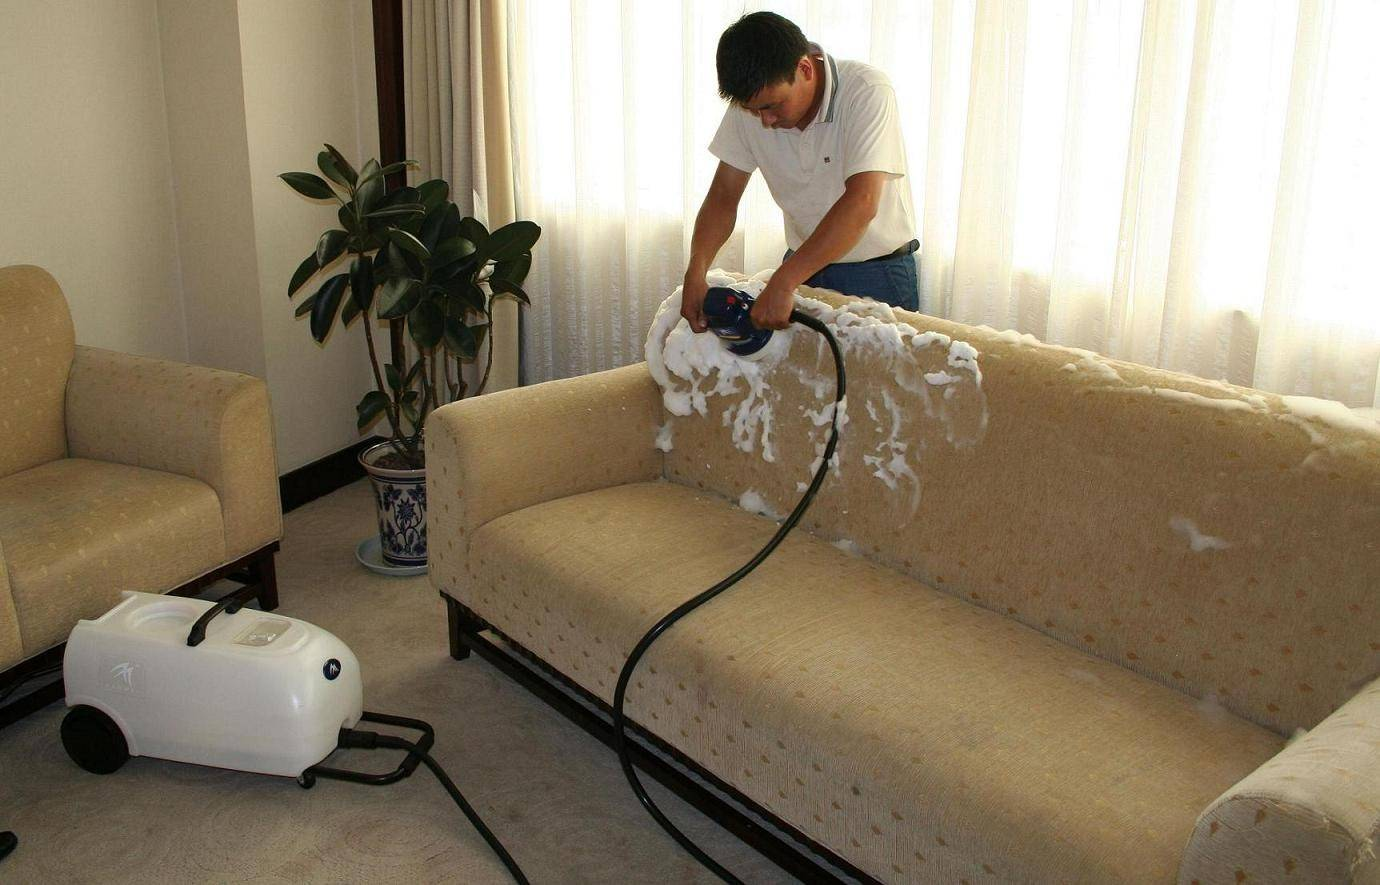 Sofa Service Where Can I Get Very Reasonable Price For Commercial Sofa Cleaning